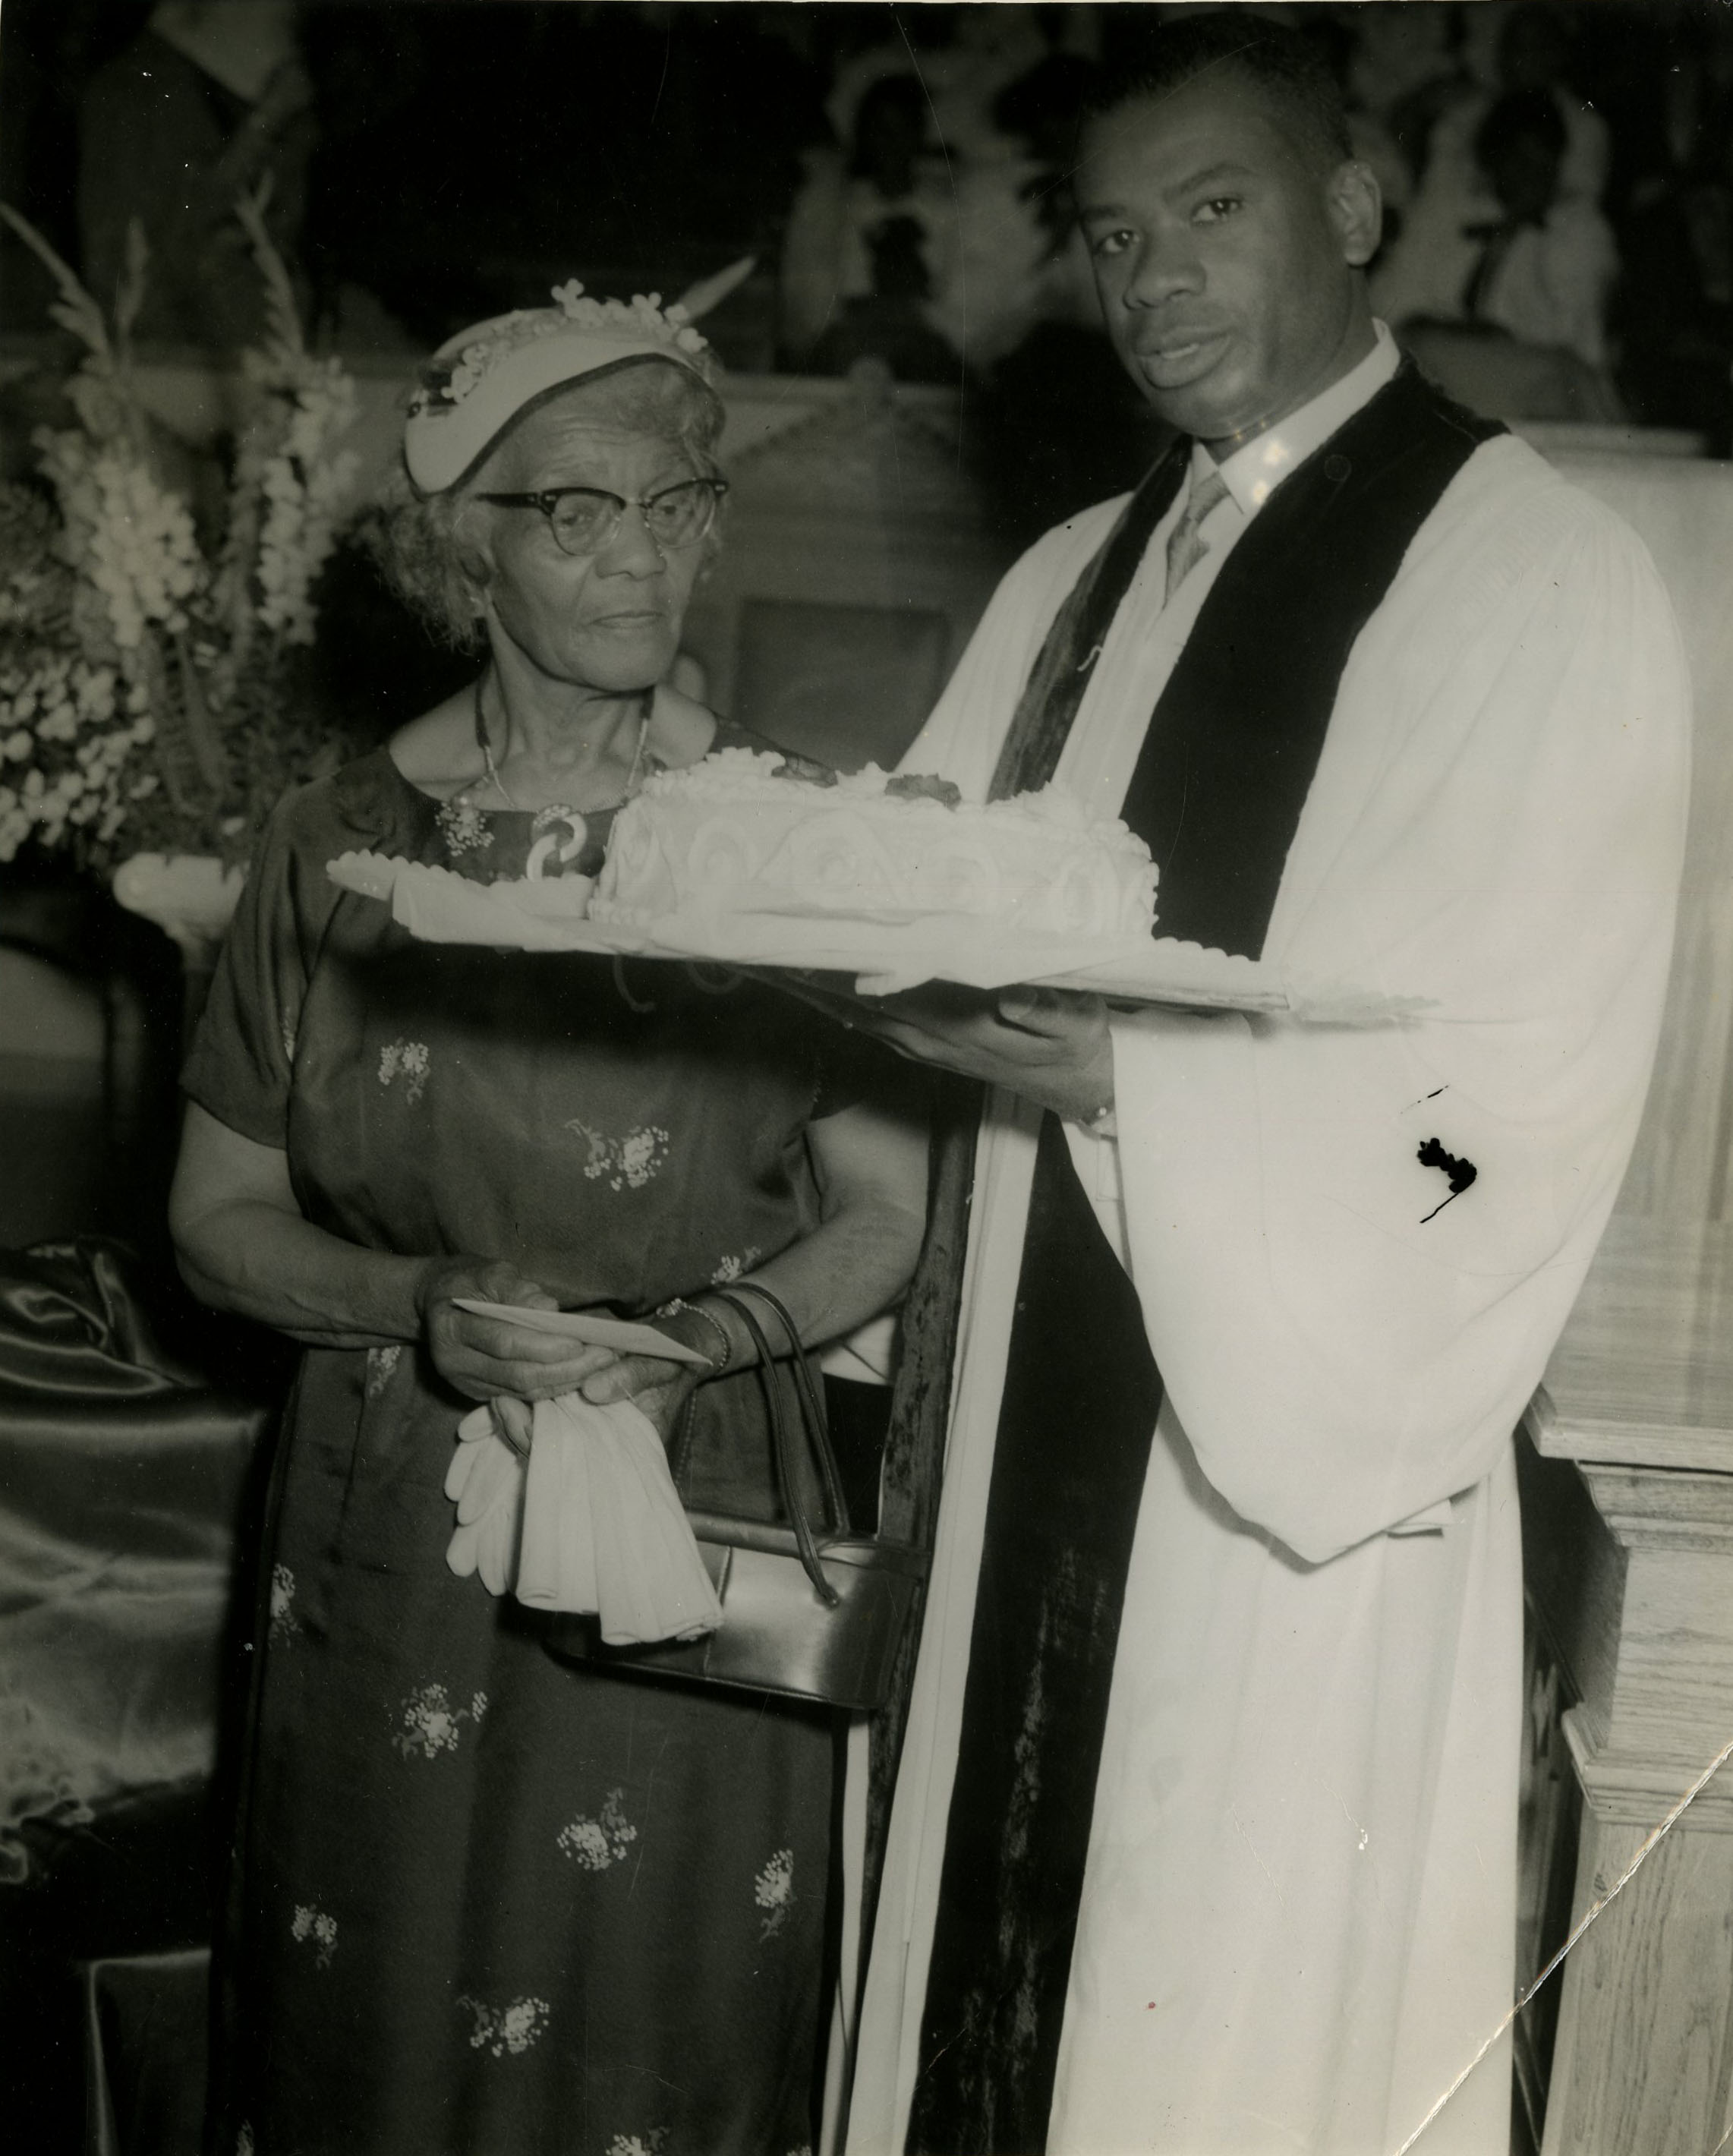 Rev. O.B. Williams and Sarah Ann Bates celebrate Mothers' Day, 1962